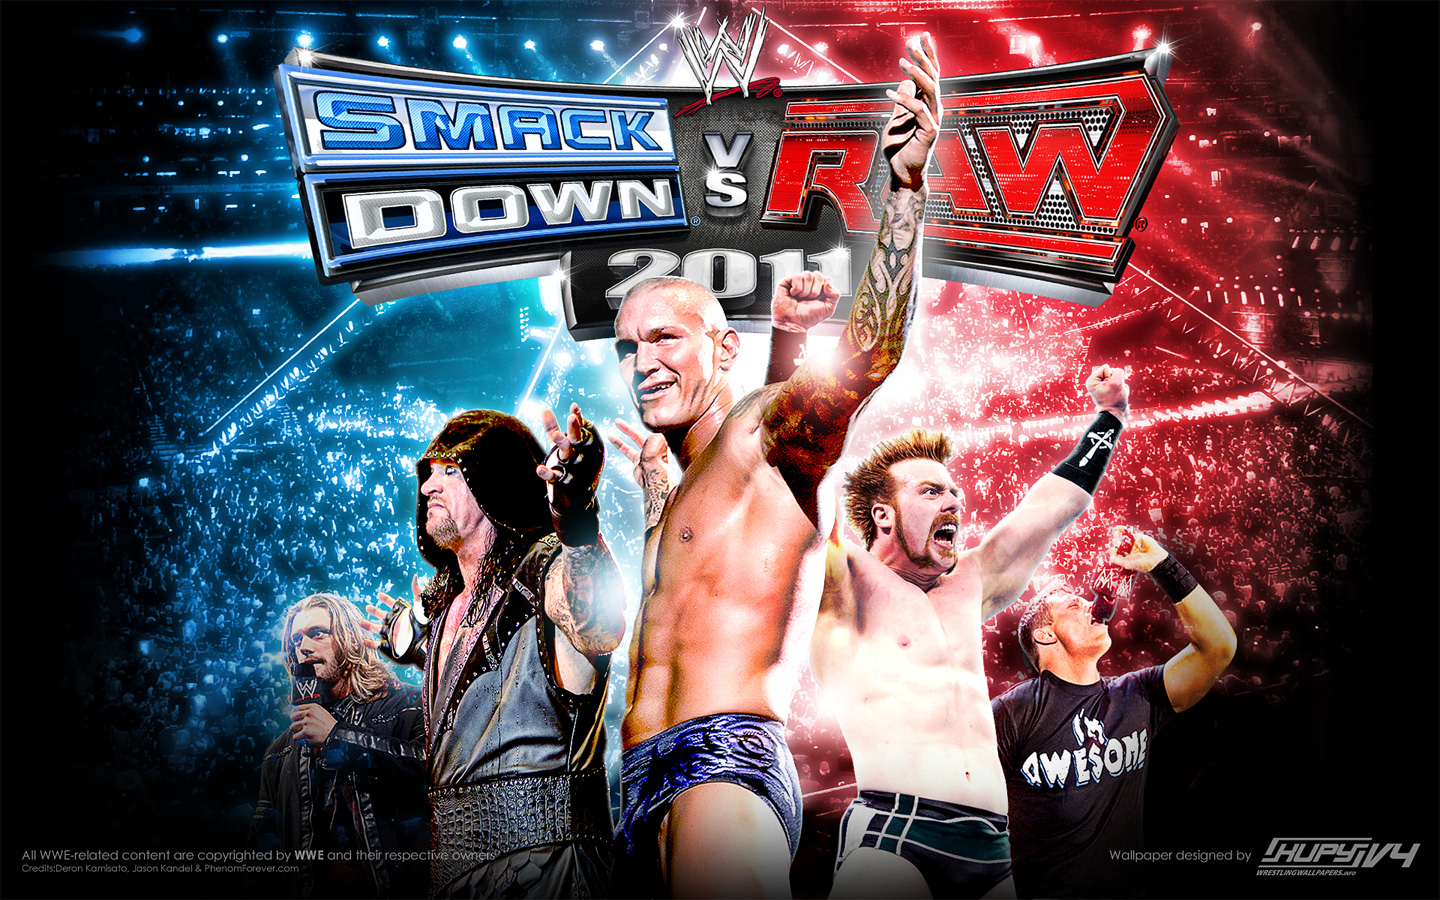 WWE Smackdown Vs Raw Free Download PC Game